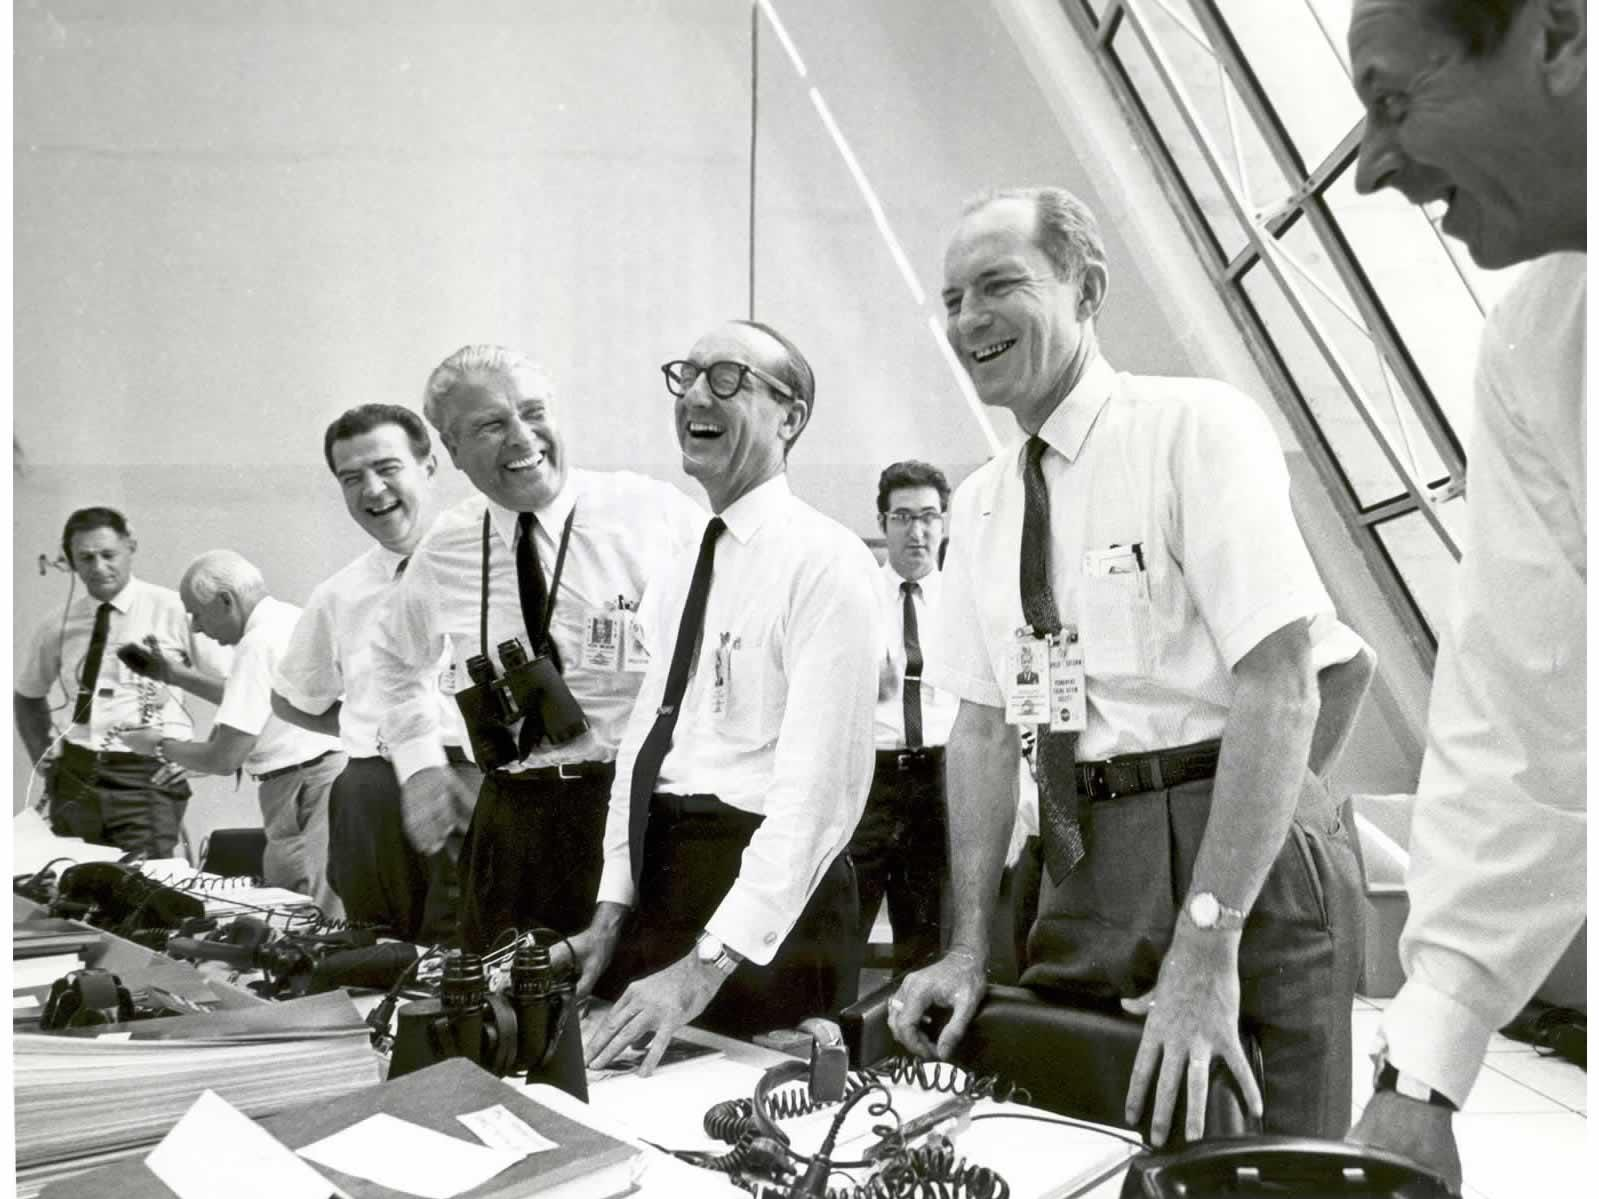 Apollo 11 mission officials relax in the Launch Control Center following the successful Apollo 11 liftoff on July 16, 1969.